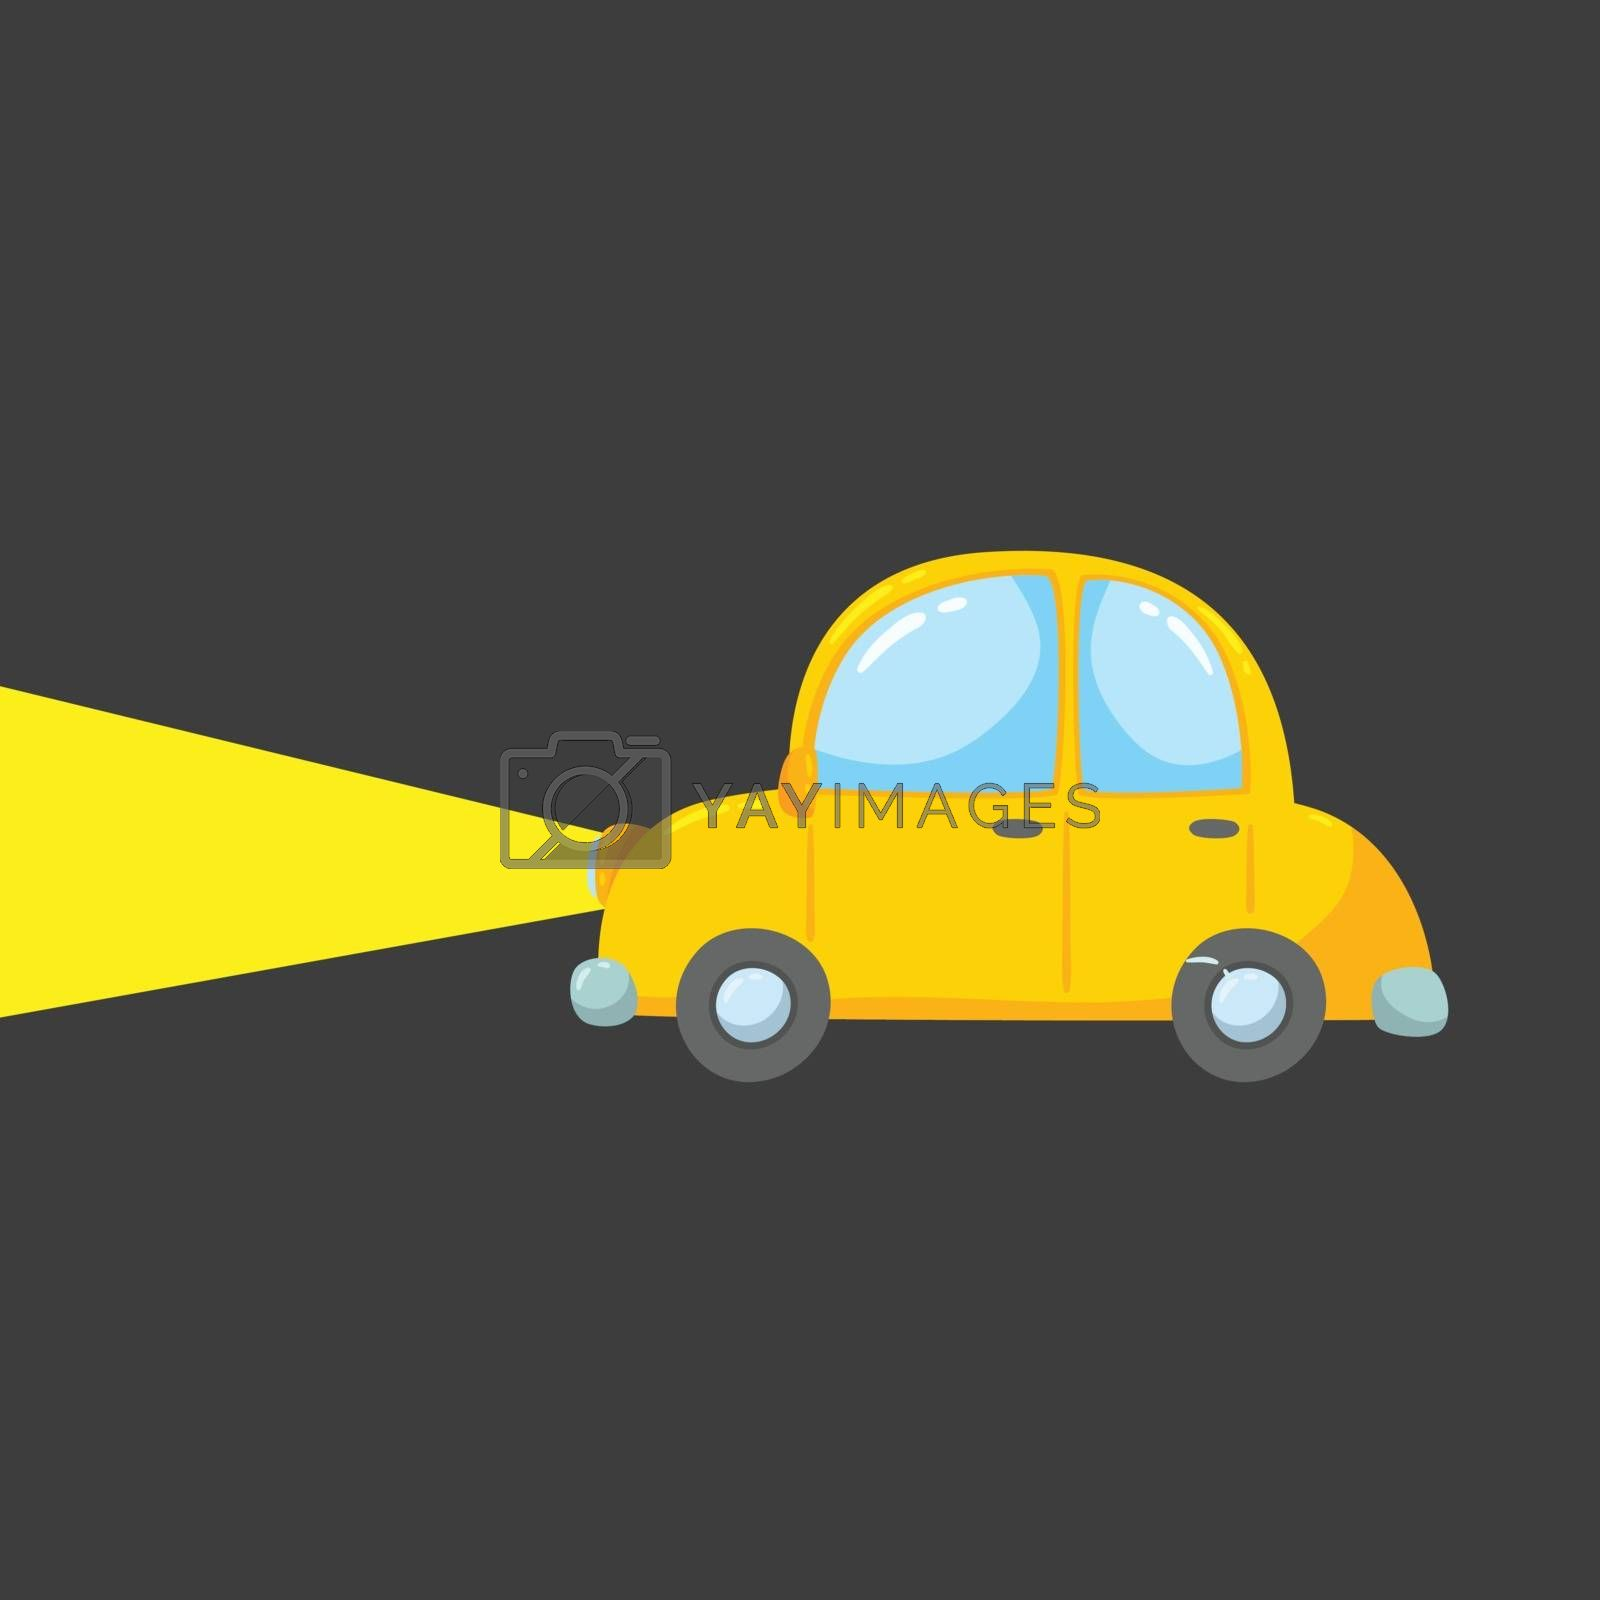 Royalty free image of Drawing of a yellow toy car vector or color illustration by Morphart